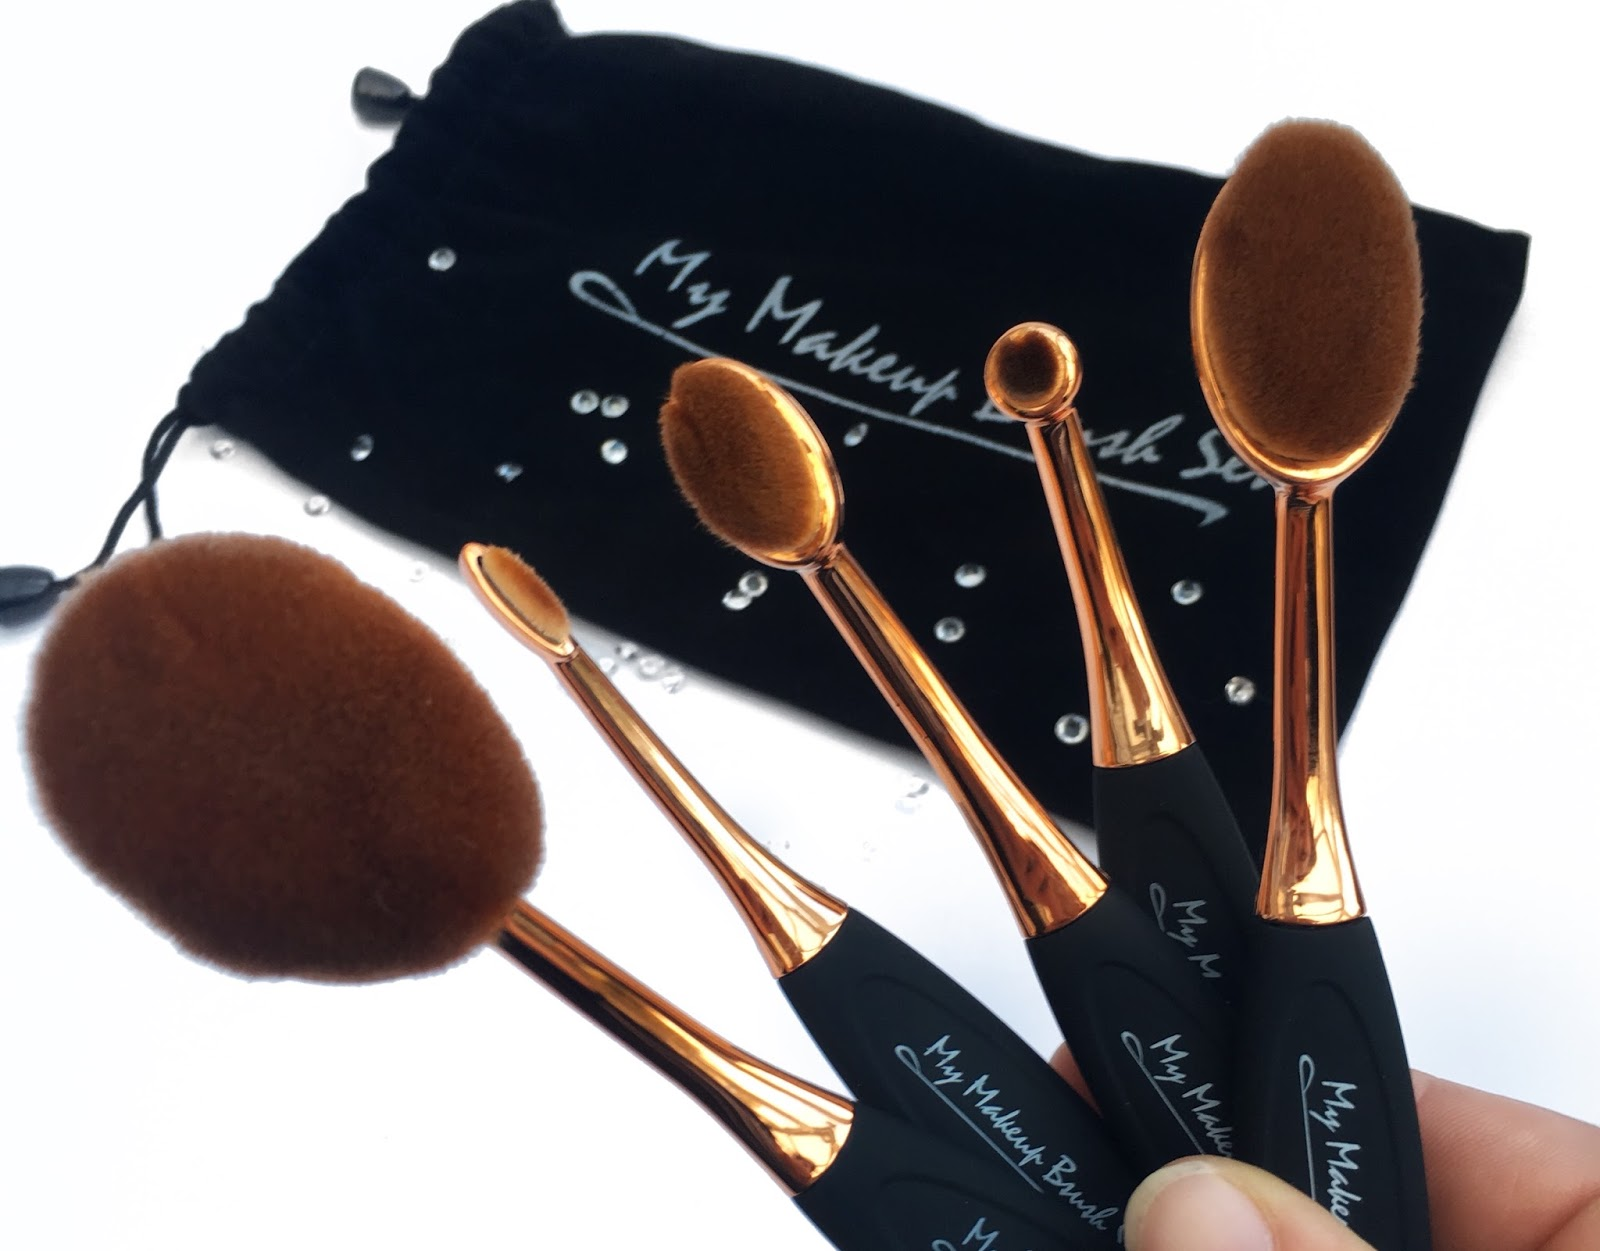 Check out these awesome brushes from www.mymakeupbrushset.com enter code SAVEWITHLOVELIBBYXX at checkout --- and receive 10% off your entire purchase!*